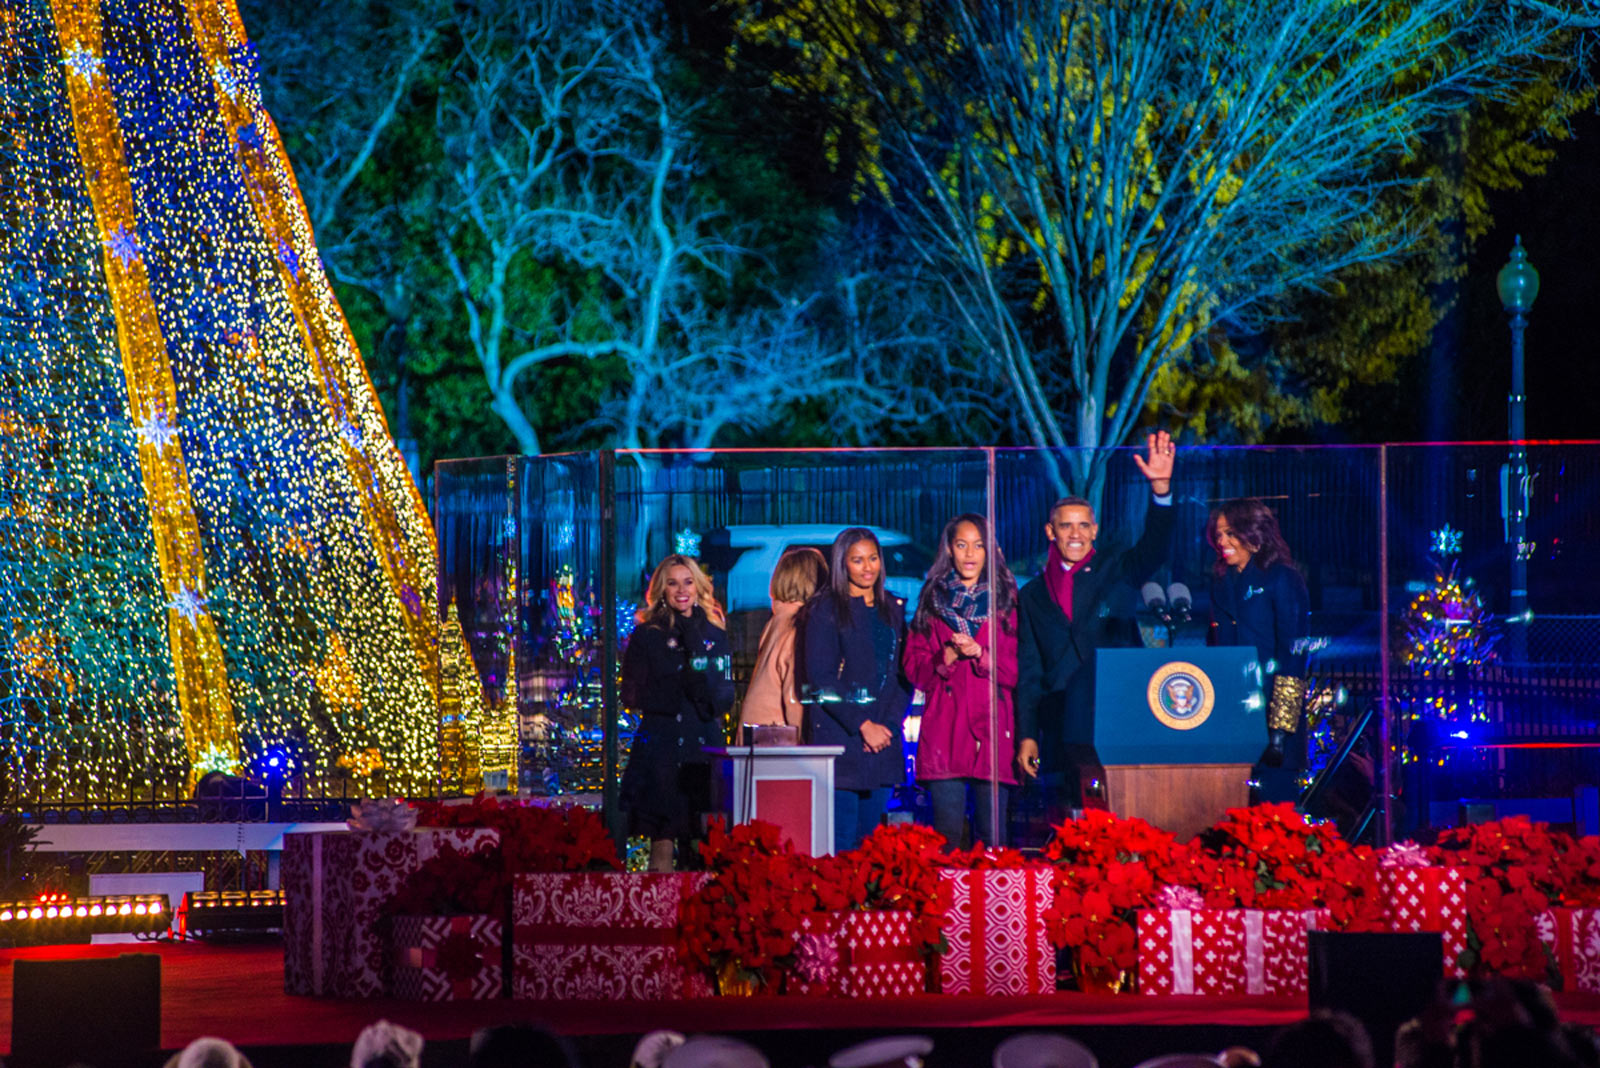 Holiday decorations at the white house are displayed during a press - Holiday Decorations At The White House Are Displayed During A Press 53